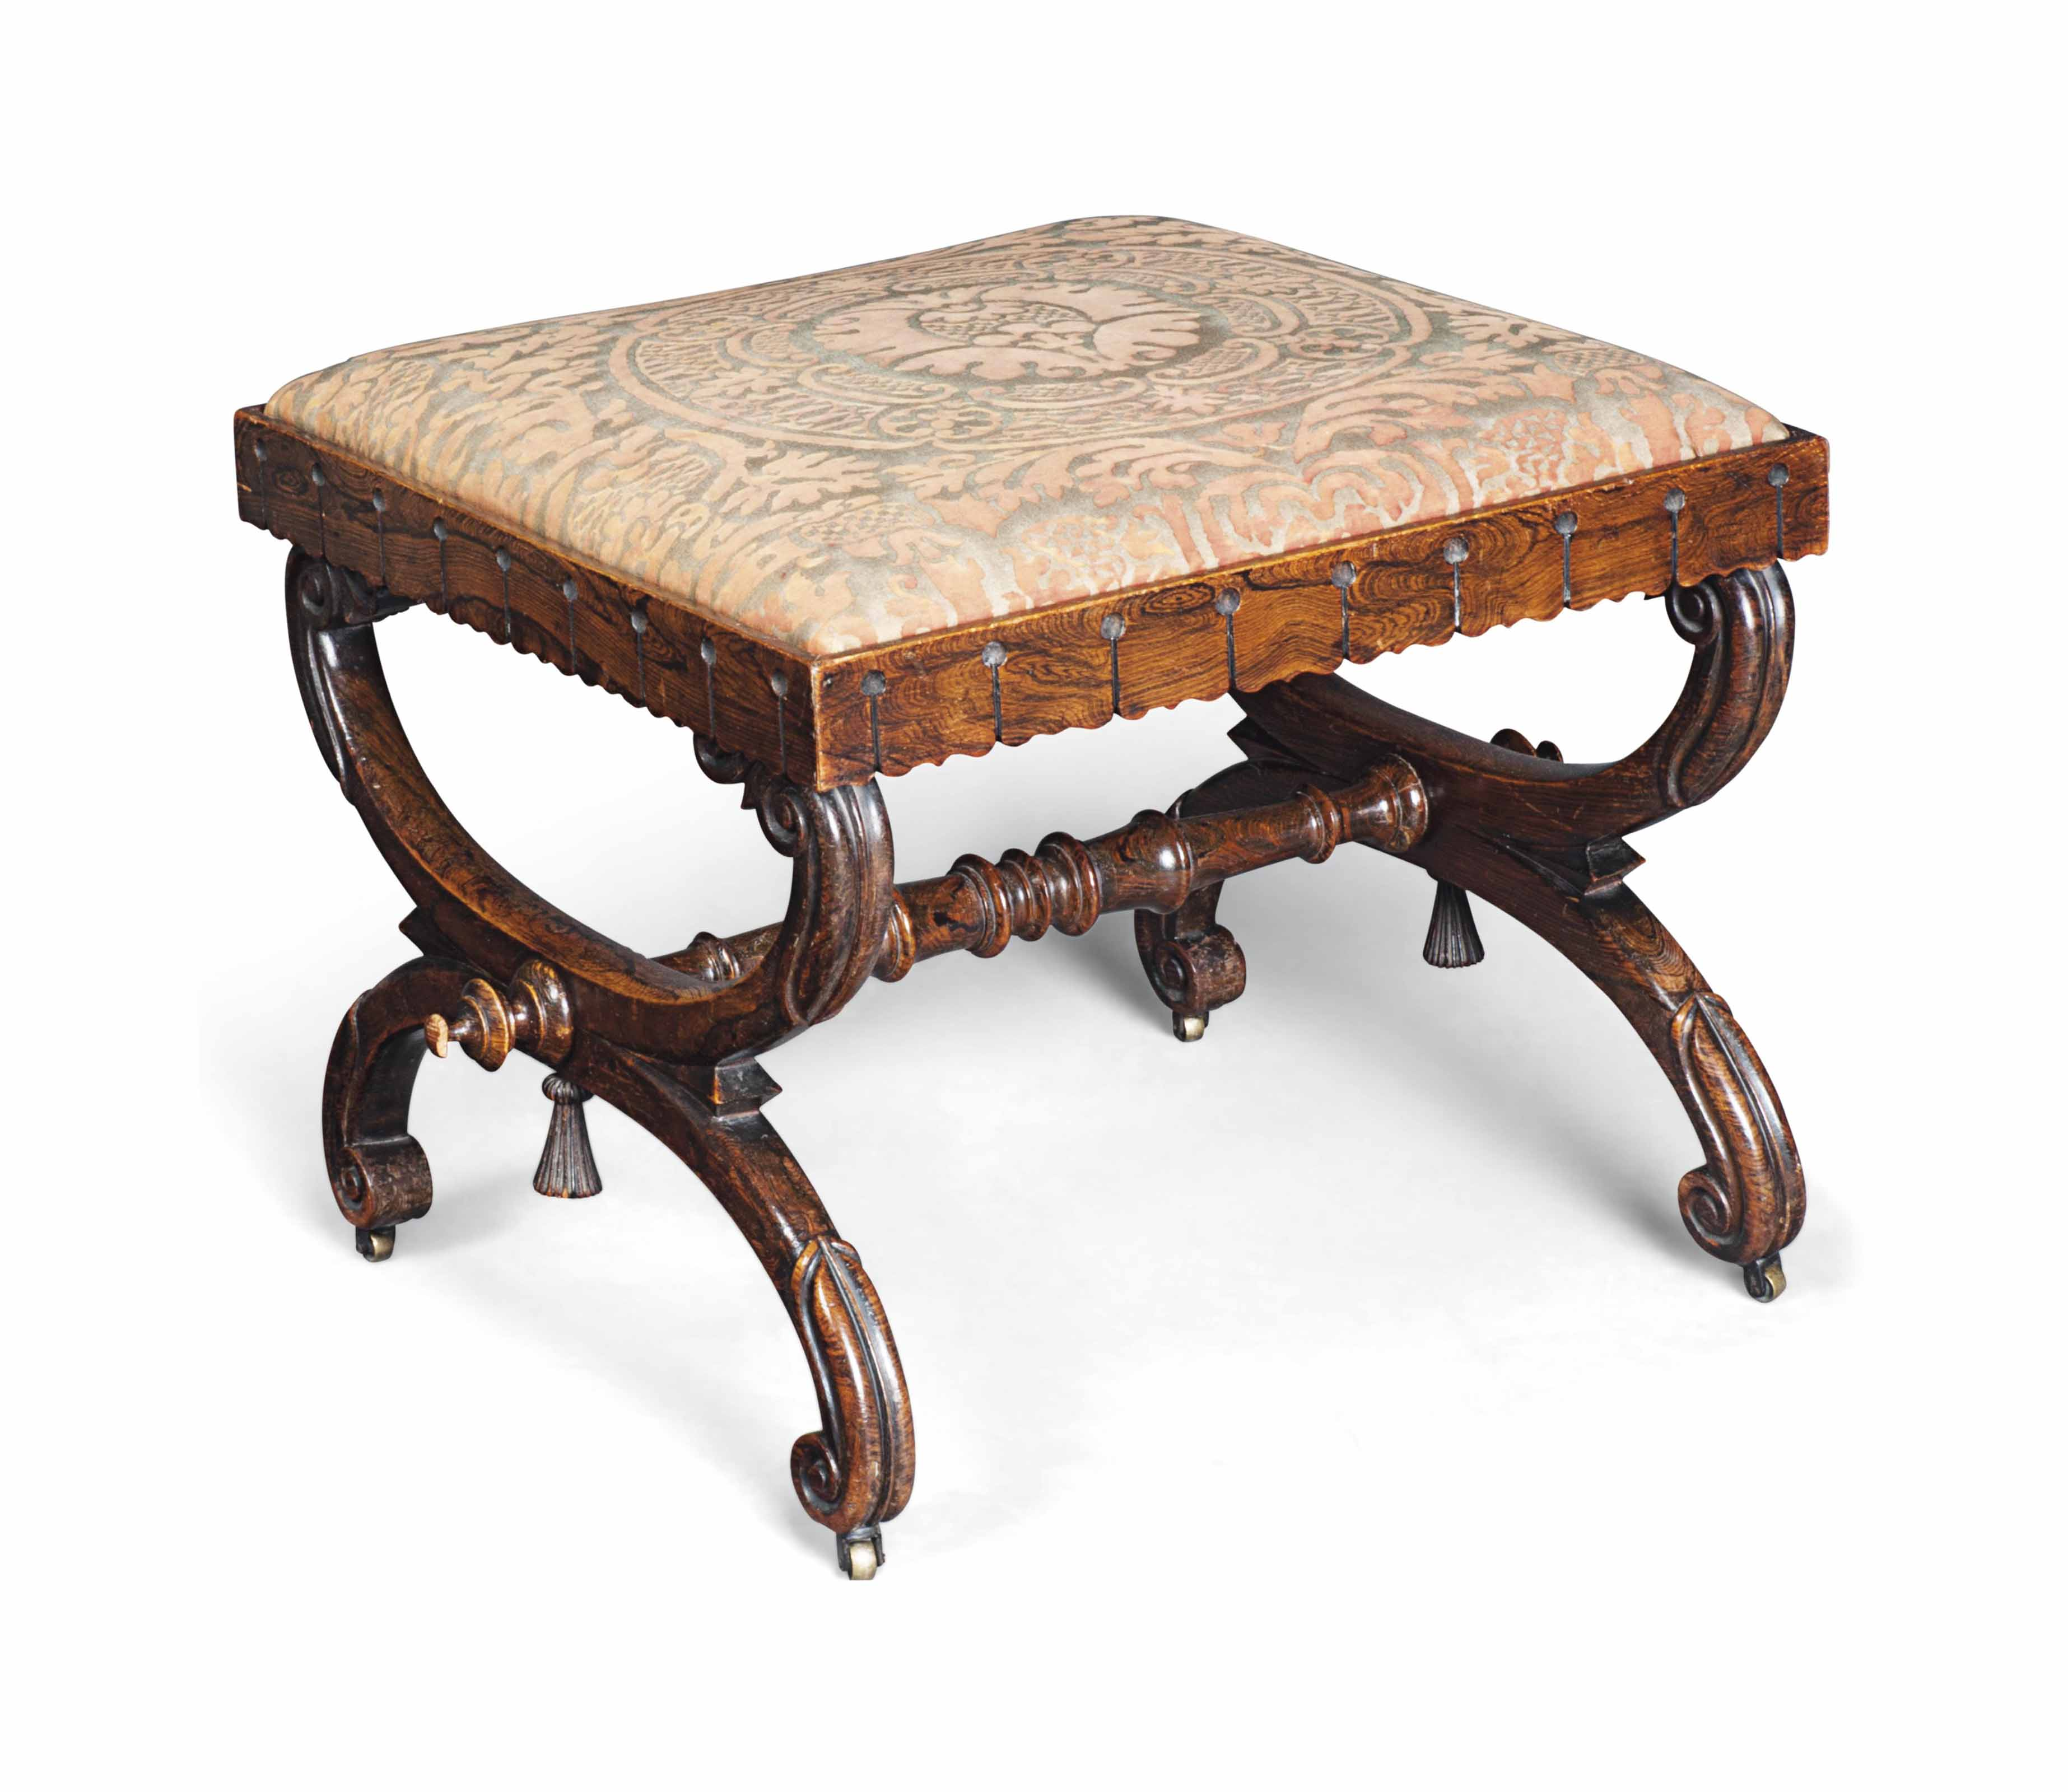 A GEORGE IV GRAINED STOOL